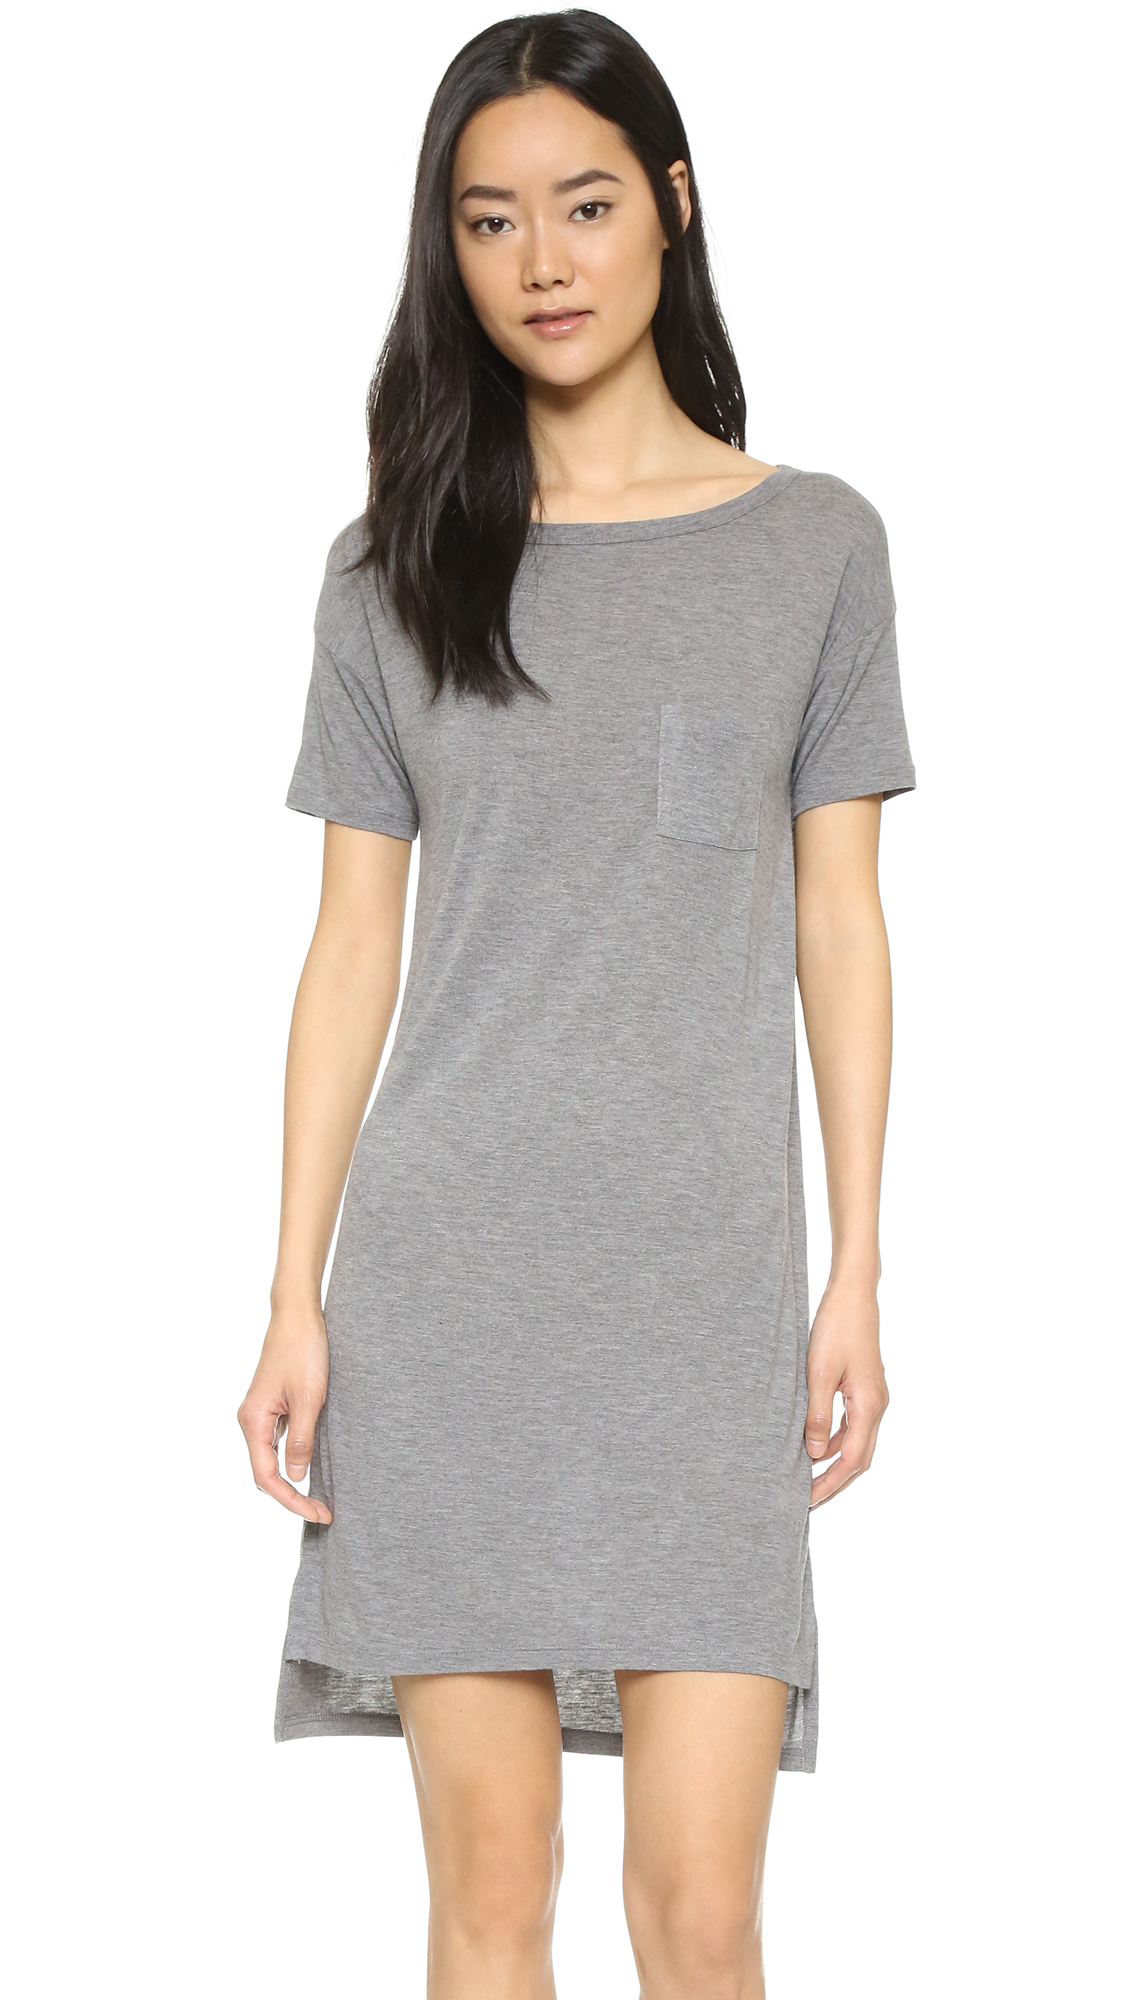 Alexanderwangt Classic Boat Neck Dress With Pocket Shopbop